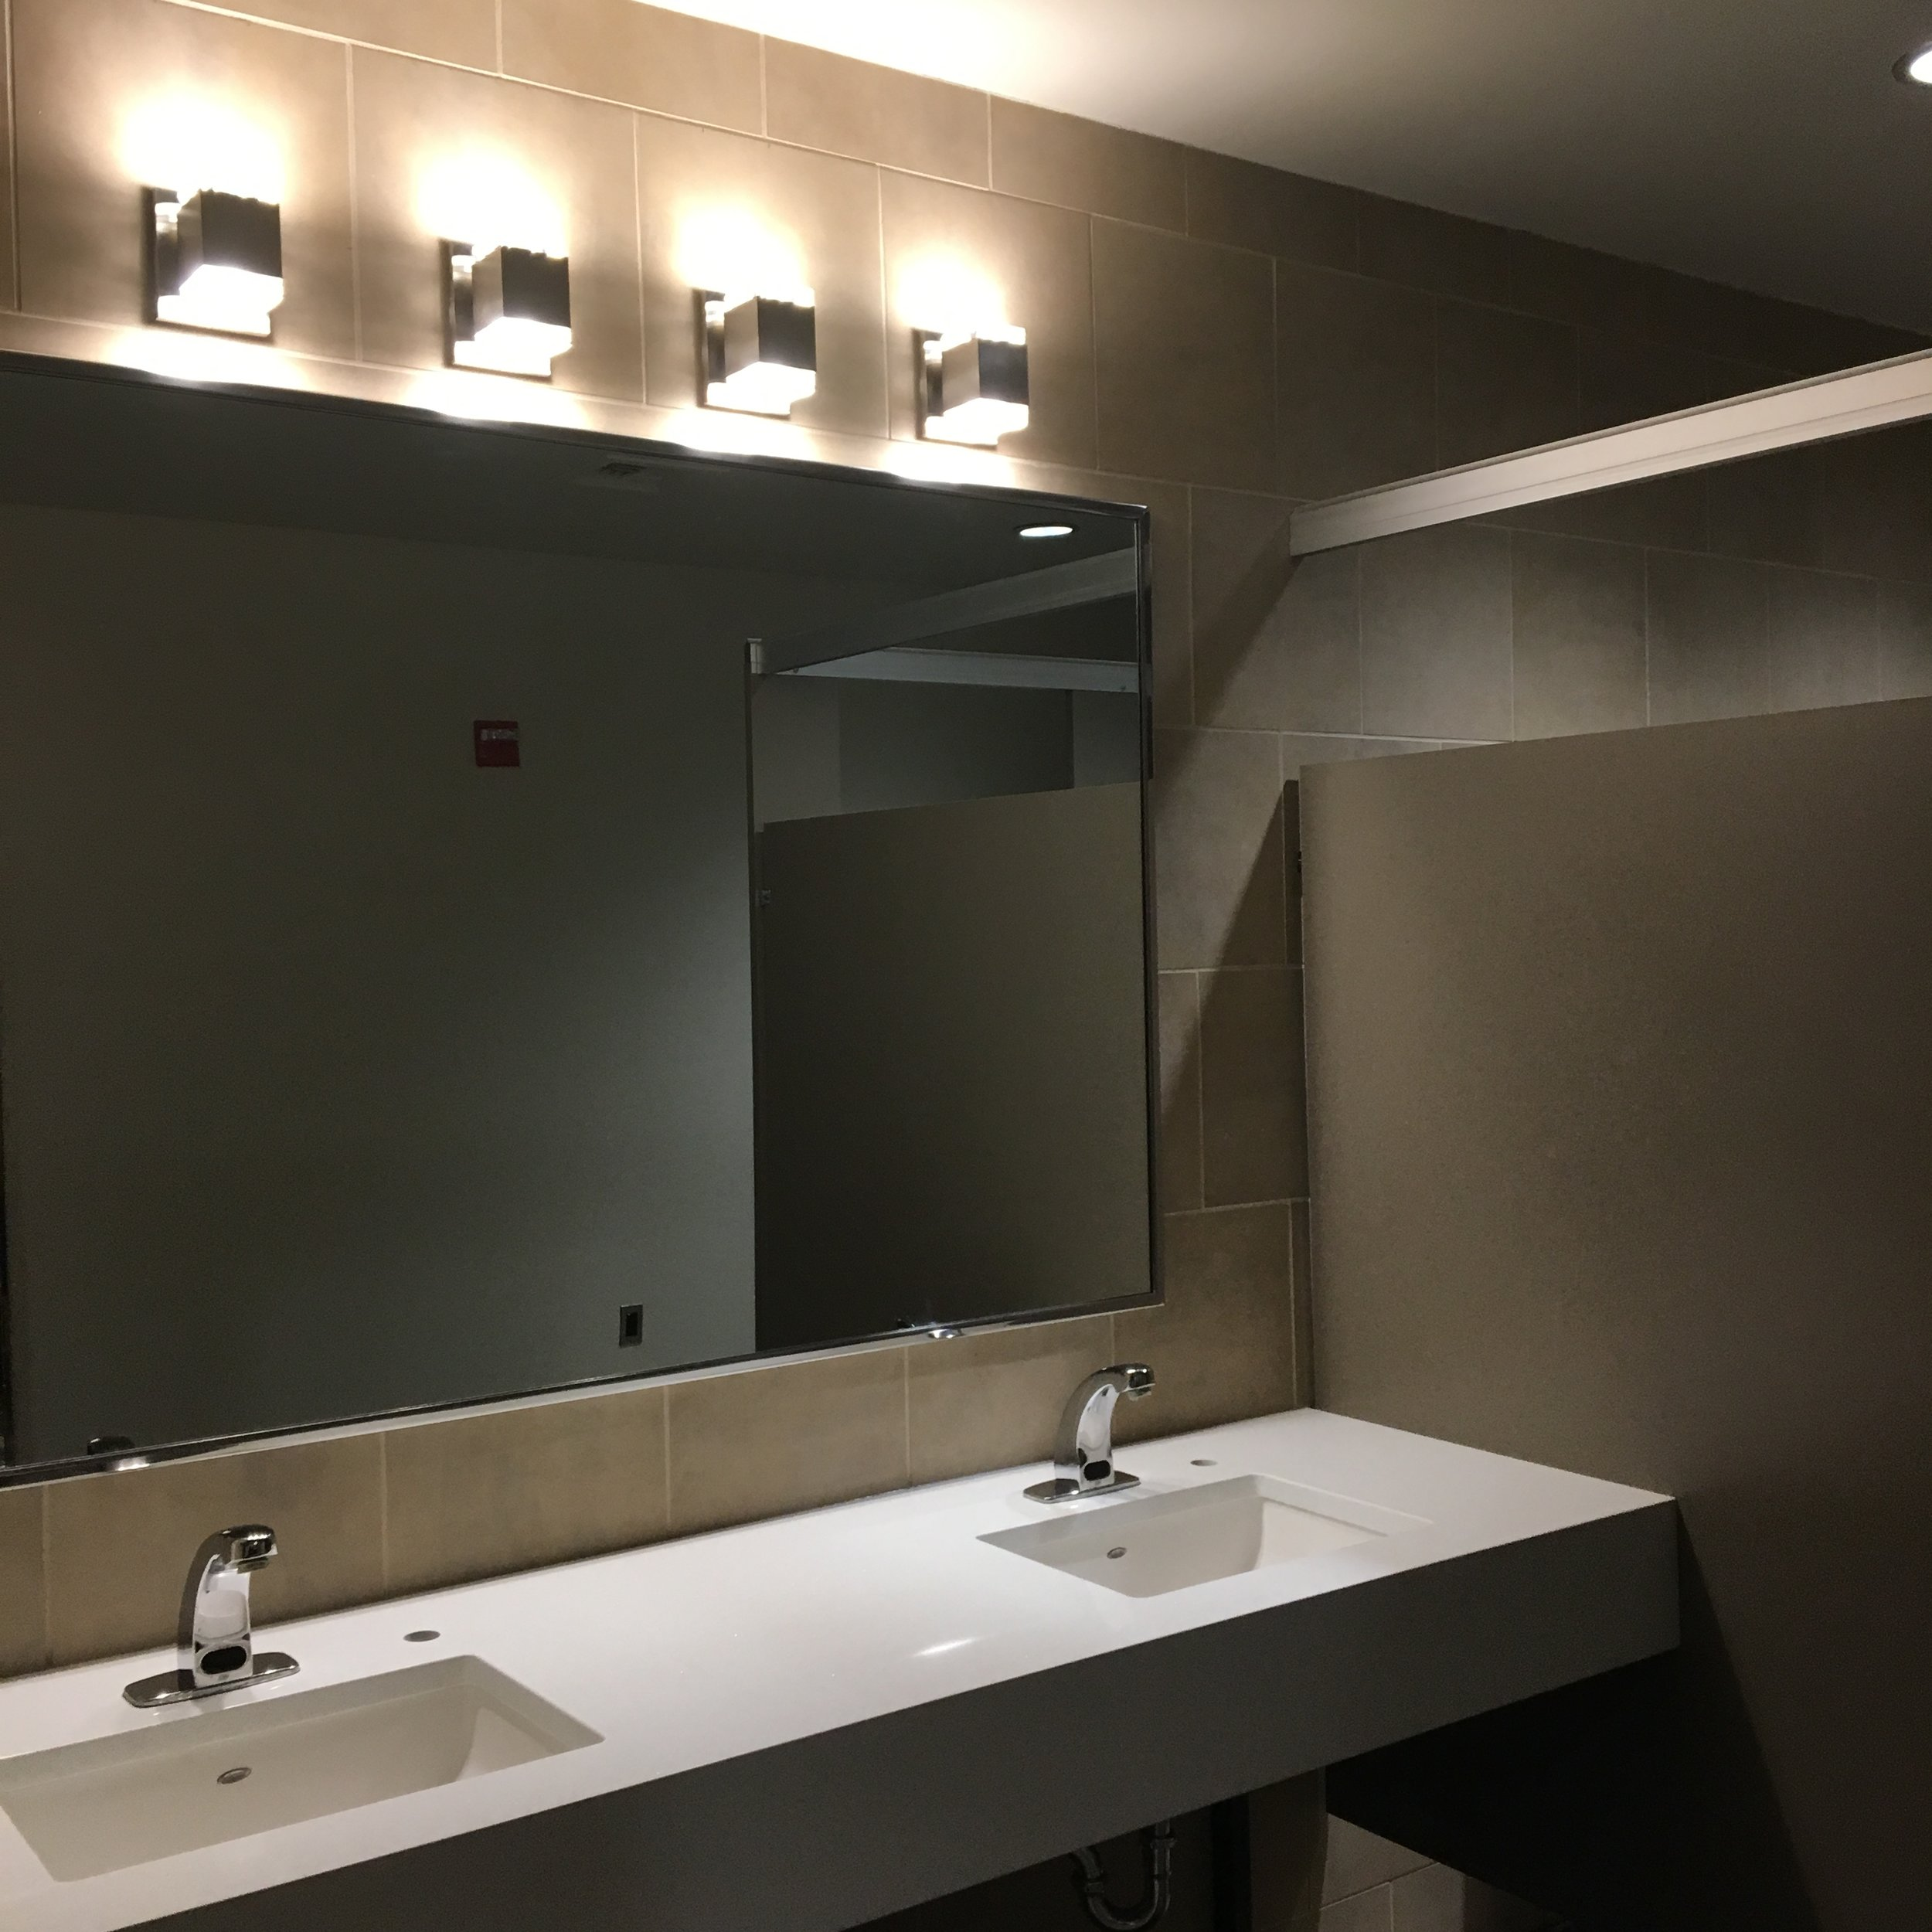 bathroom vanity / Sinks / Mirror